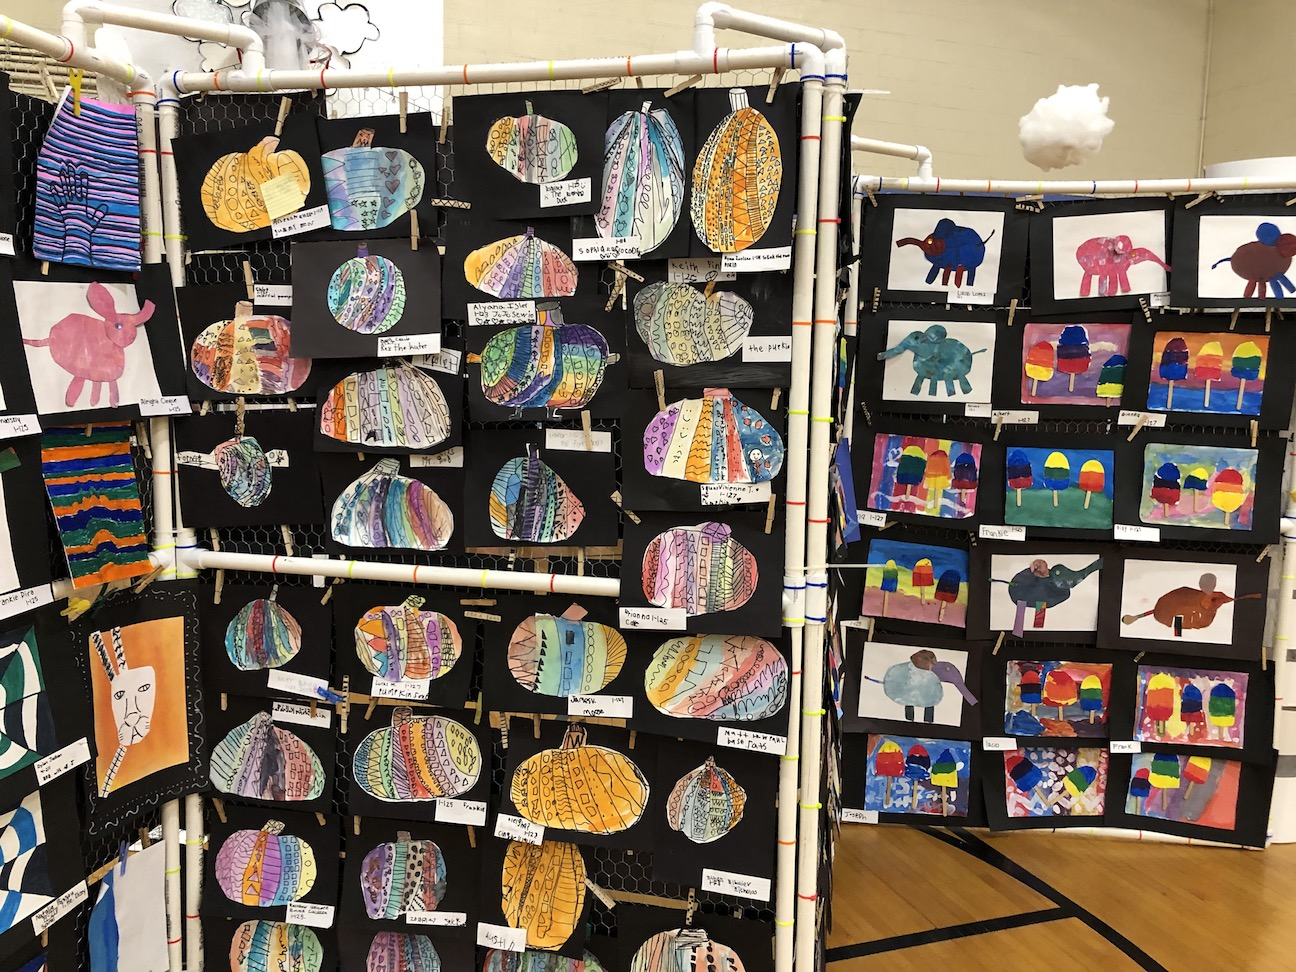 pictures on different shaped paper and elephant pictures in the background.